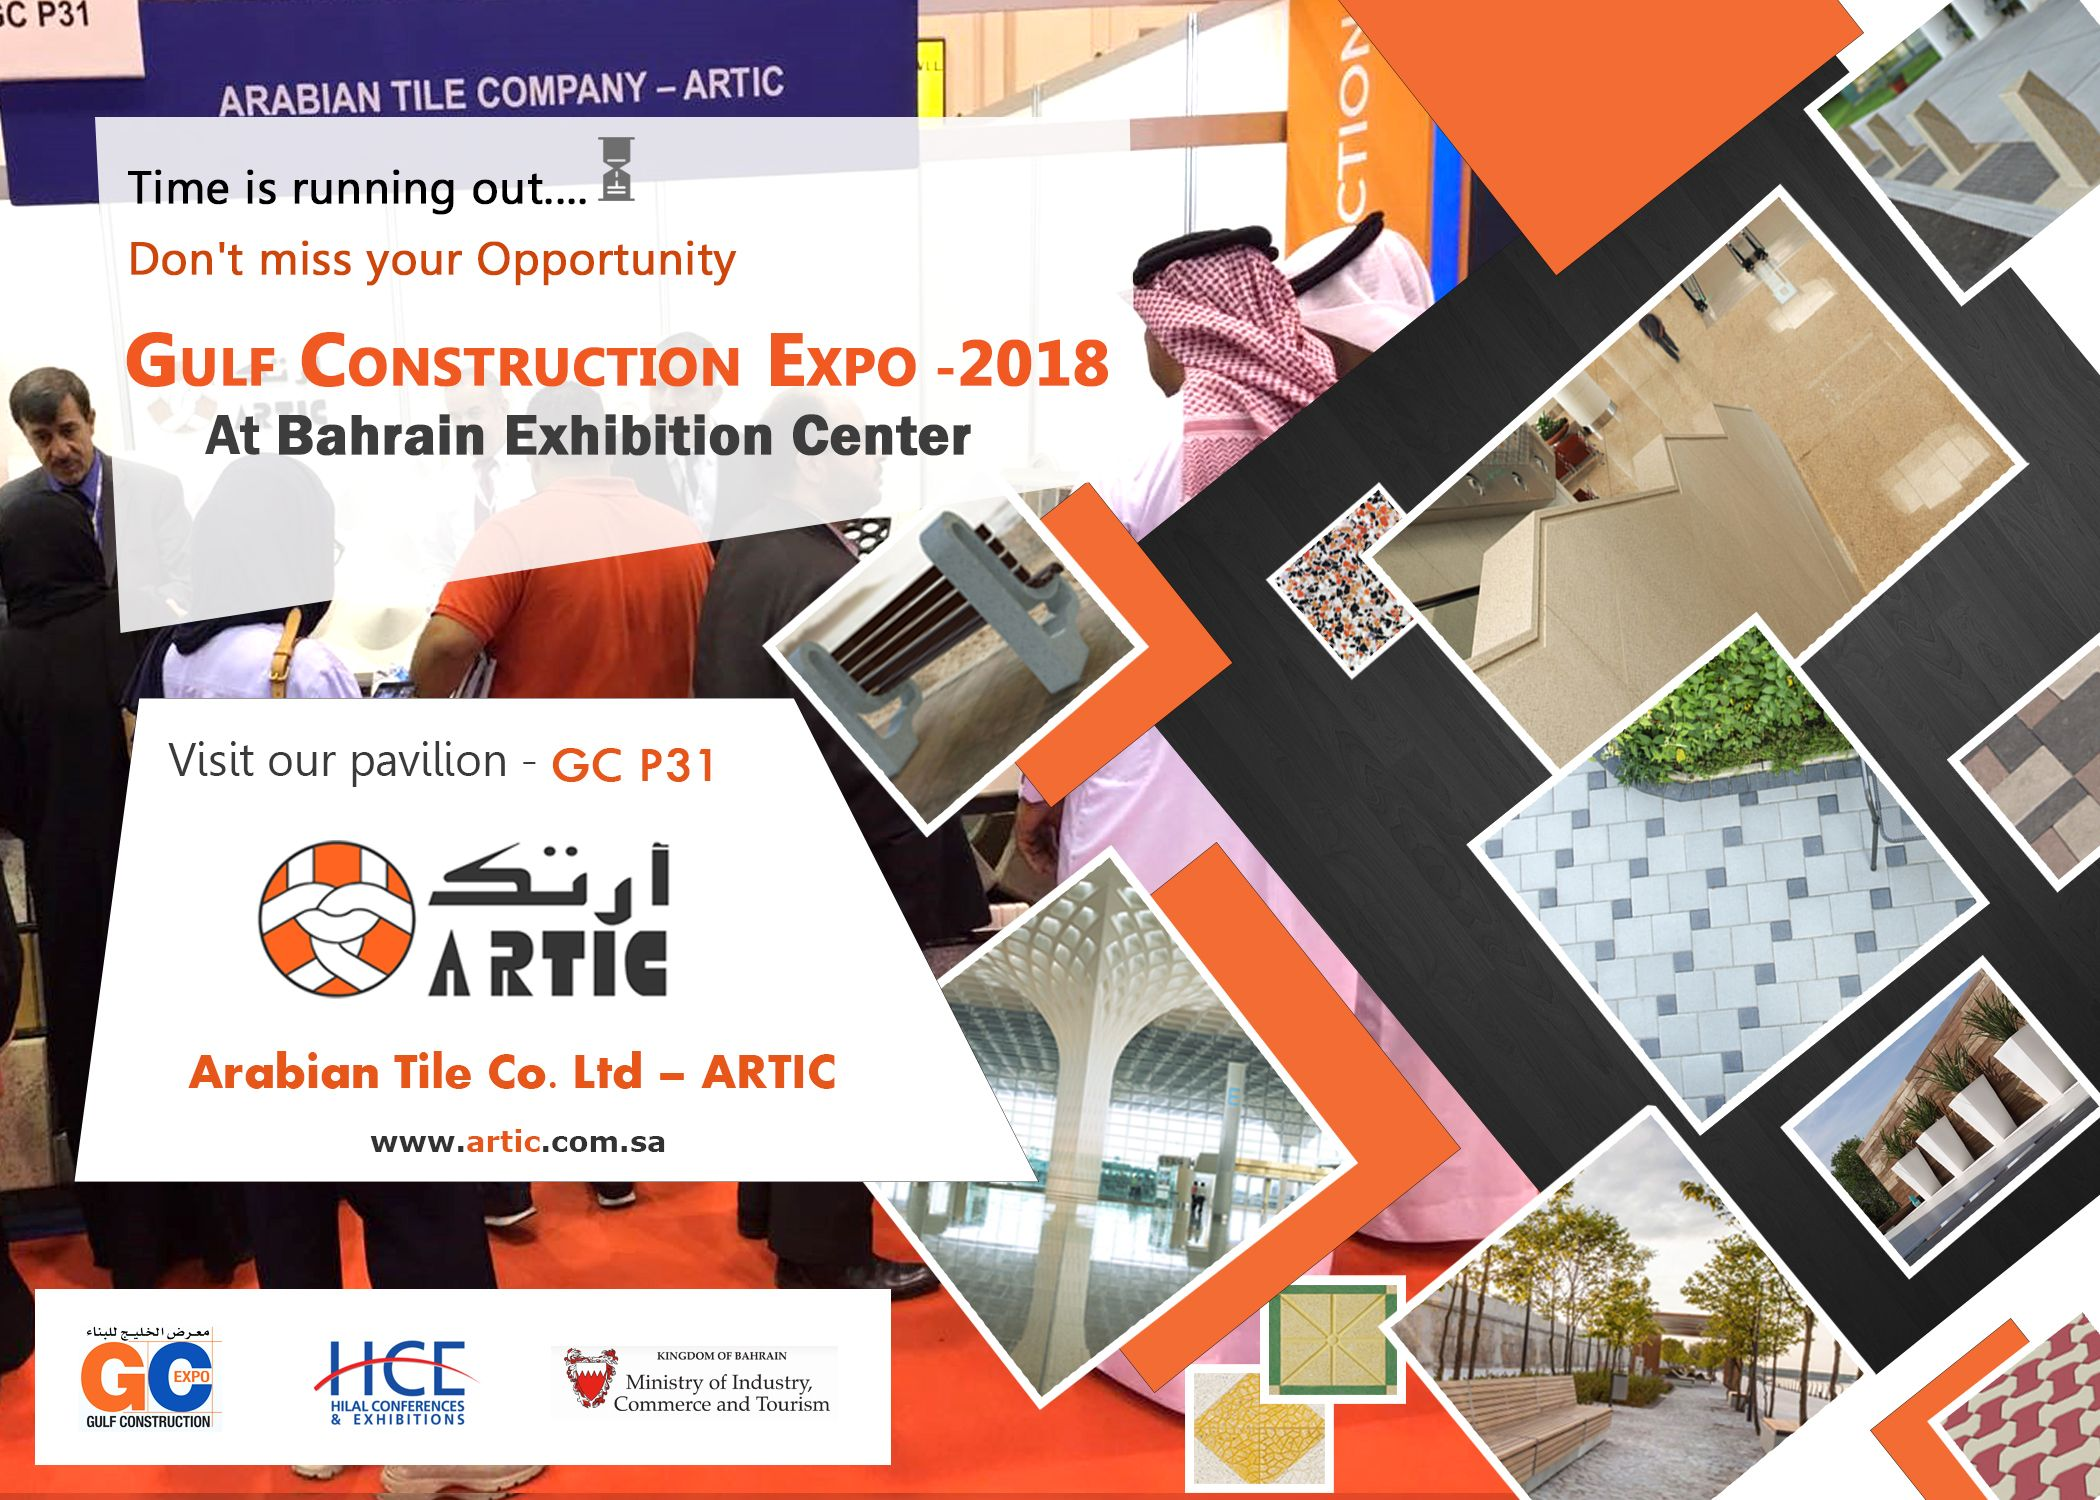 Time is running out     Final Day Gulf Construction Expo 2018 at